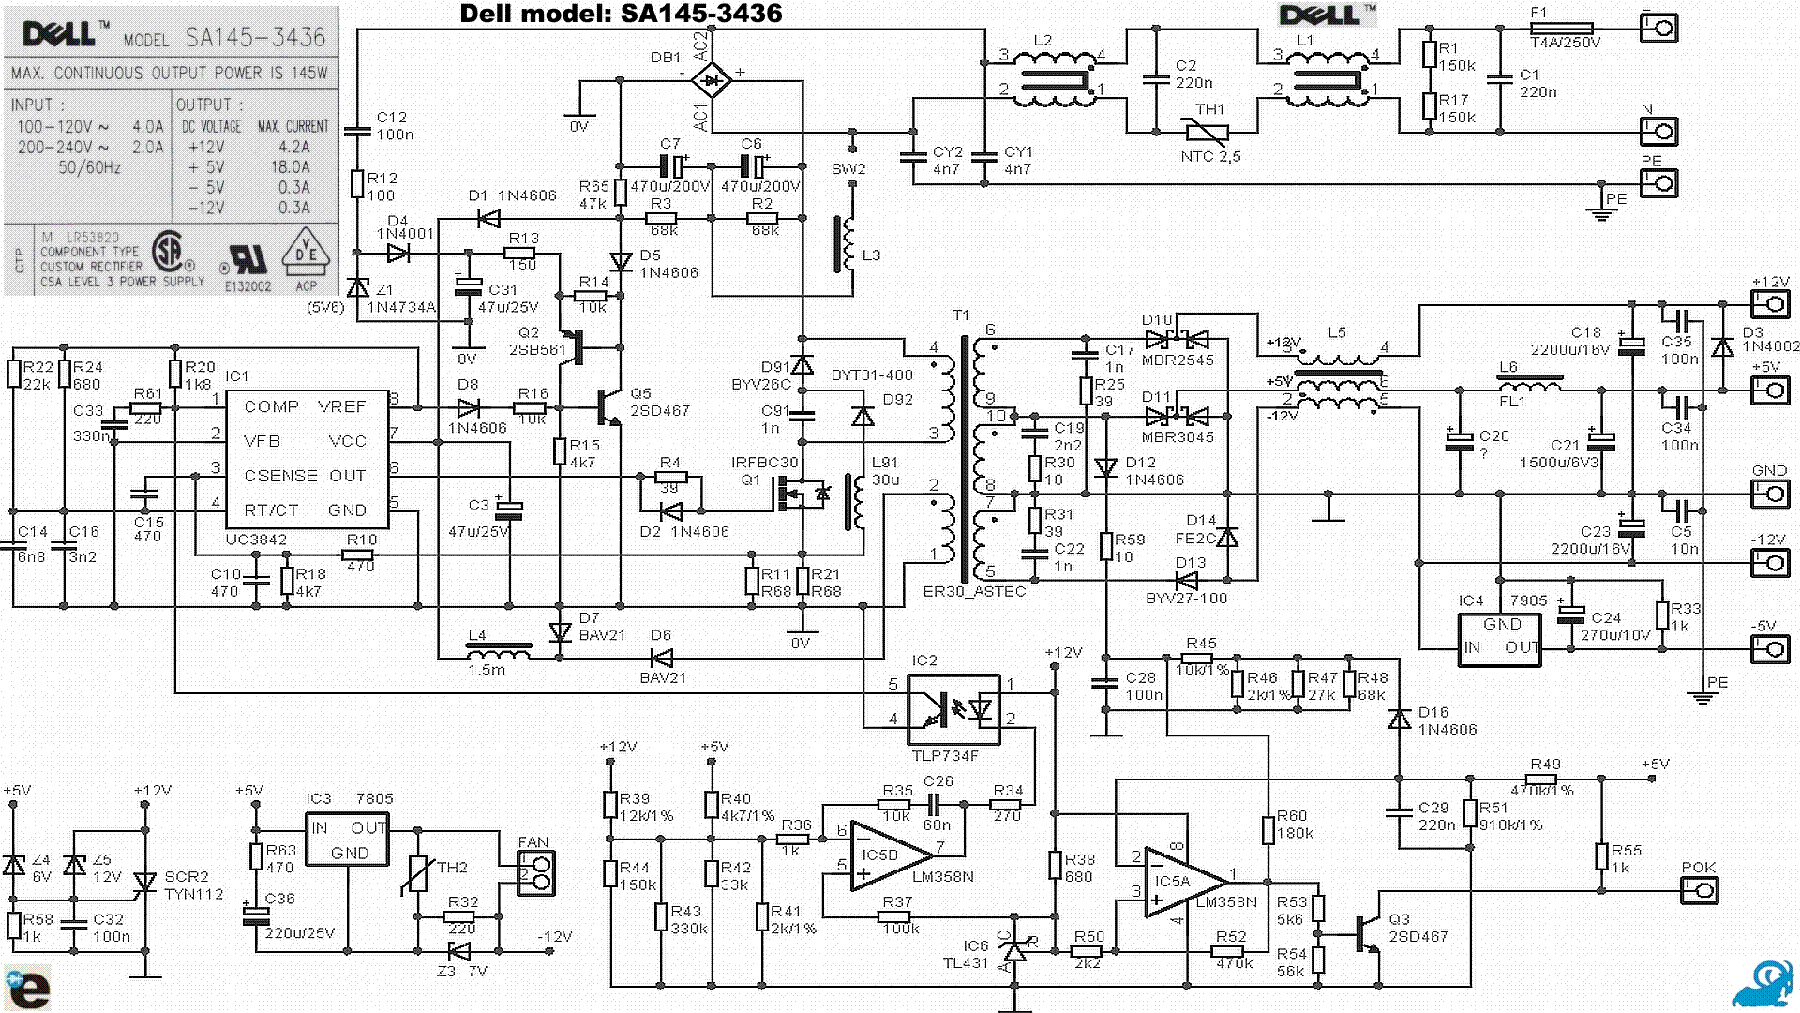 Dell Power Supply Schematics Bookmark About Wiring Diagram Schematic Schema Circuit Pa12 19v Notebook Adapter Smps 1d07012 3 Sa145 3436 Service Manual Download Rh Elektrotanya Com